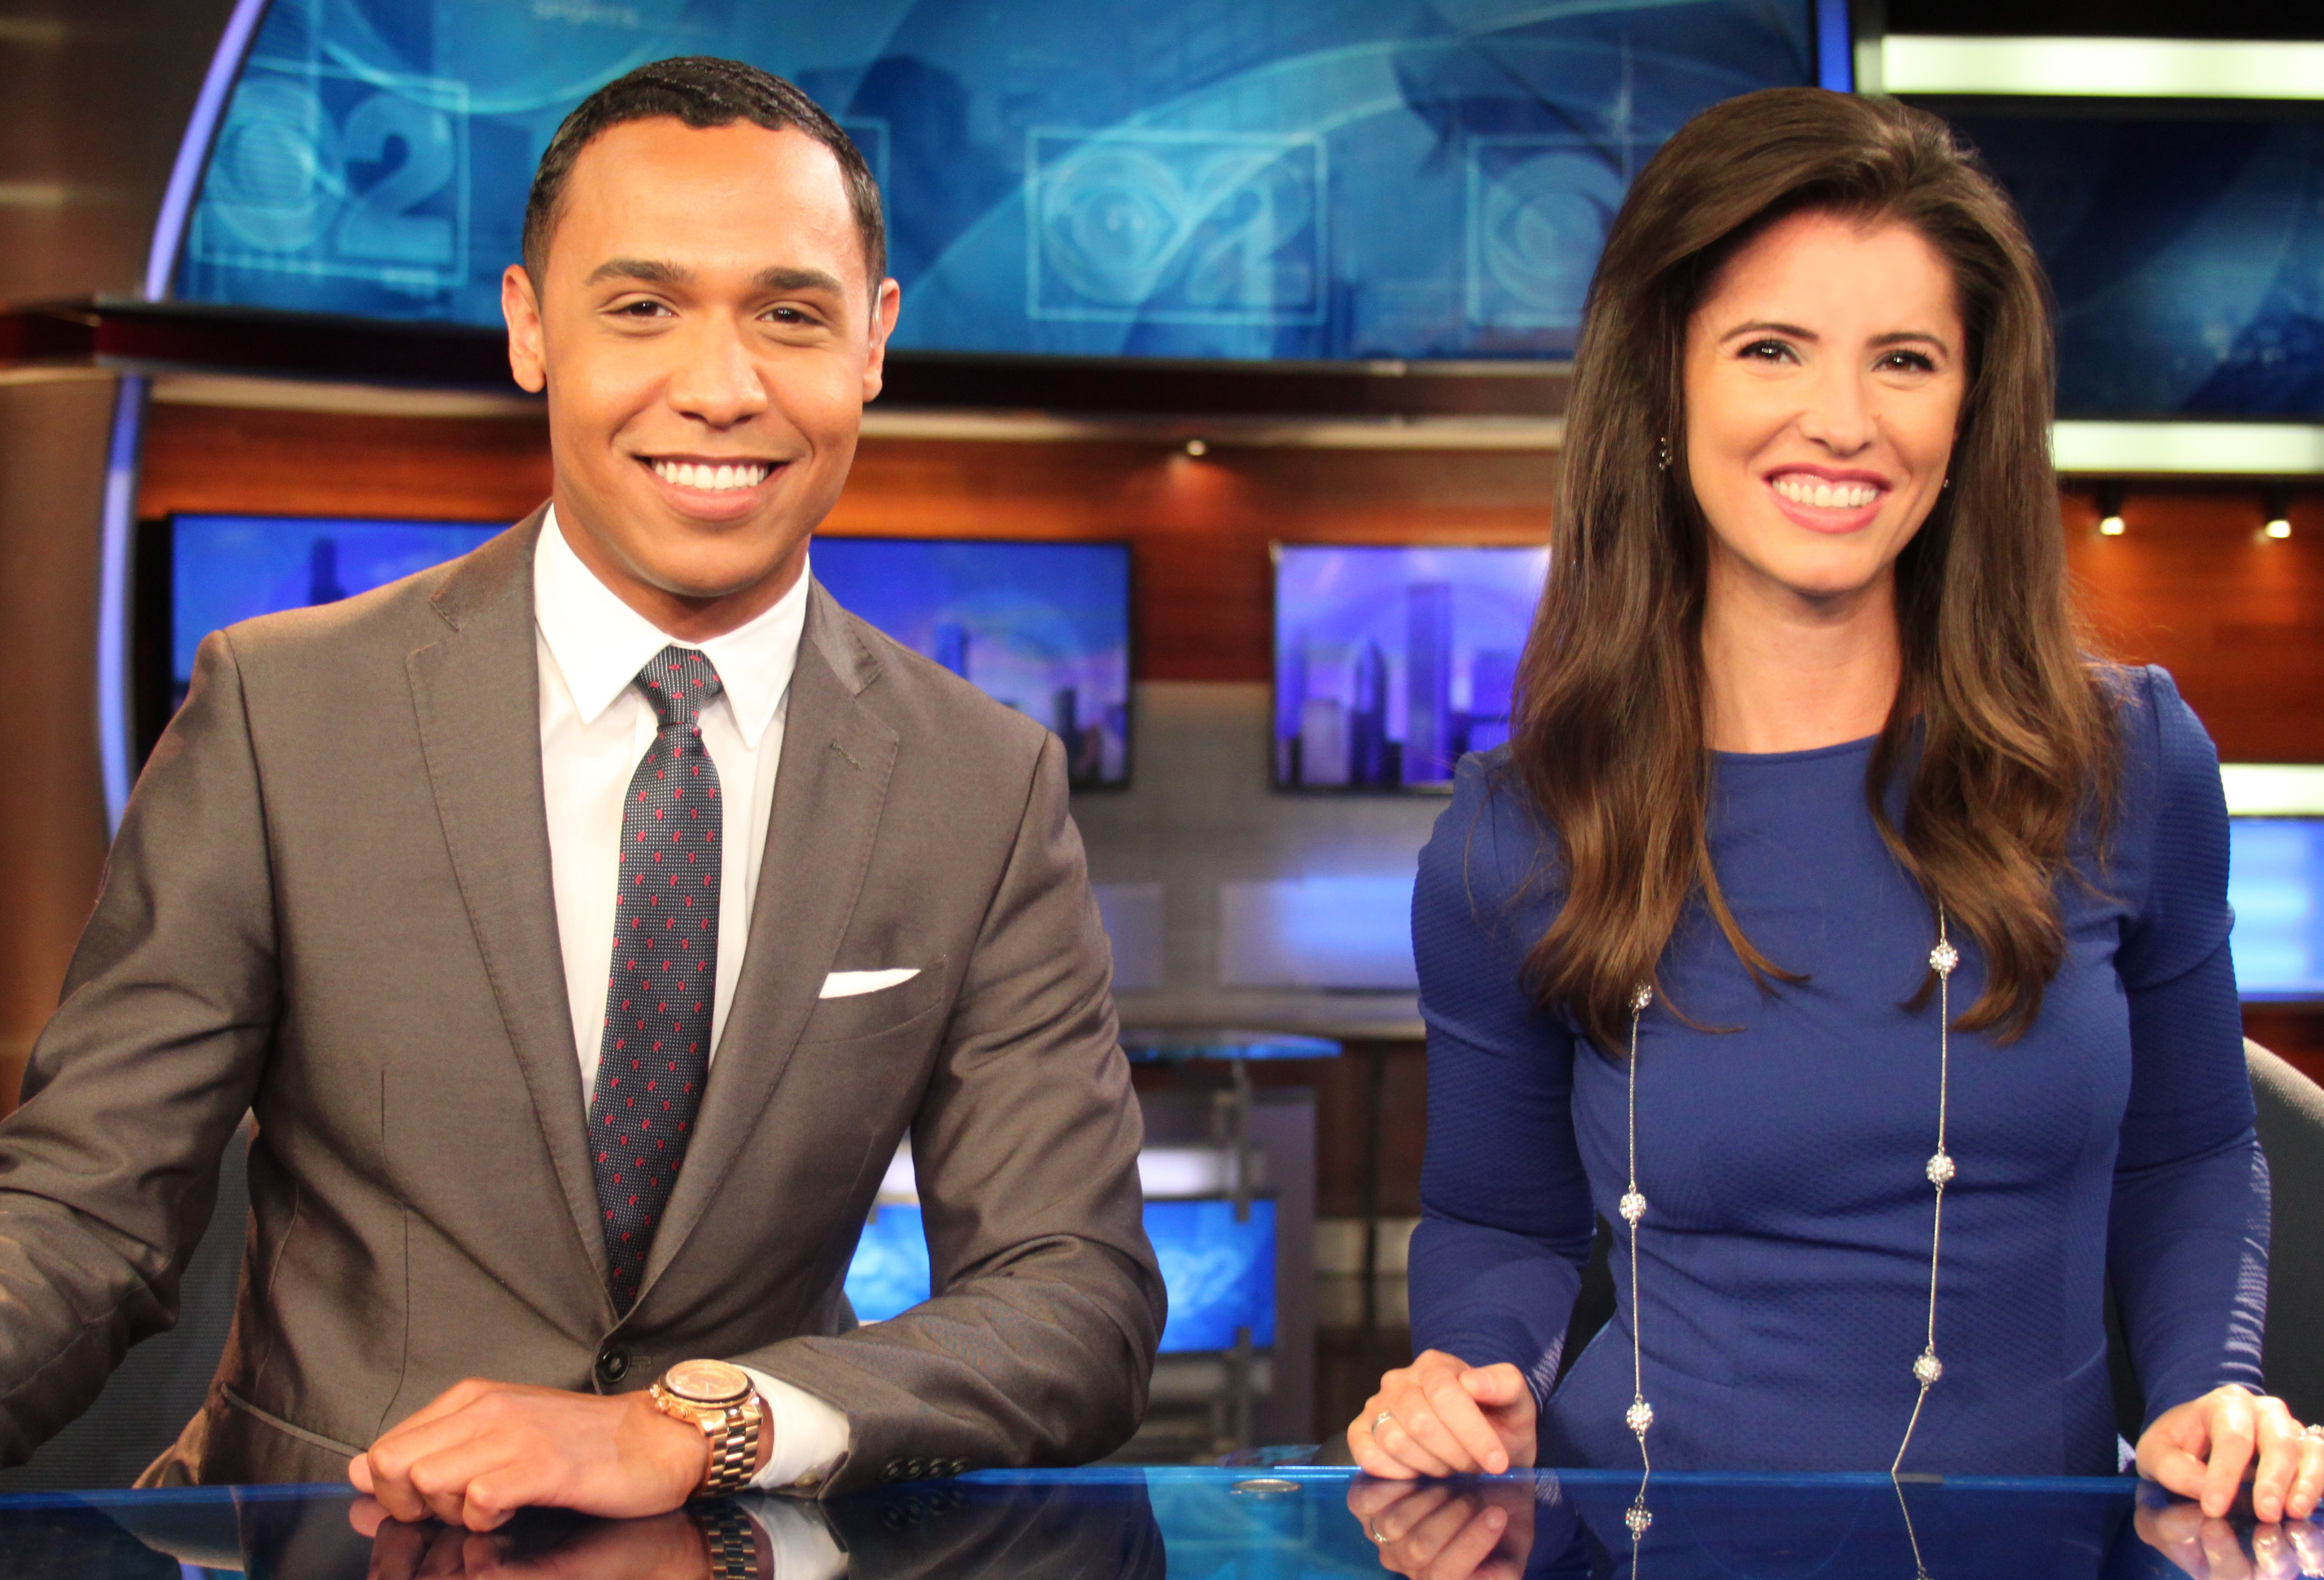 Another morning anchor joins CBS 2